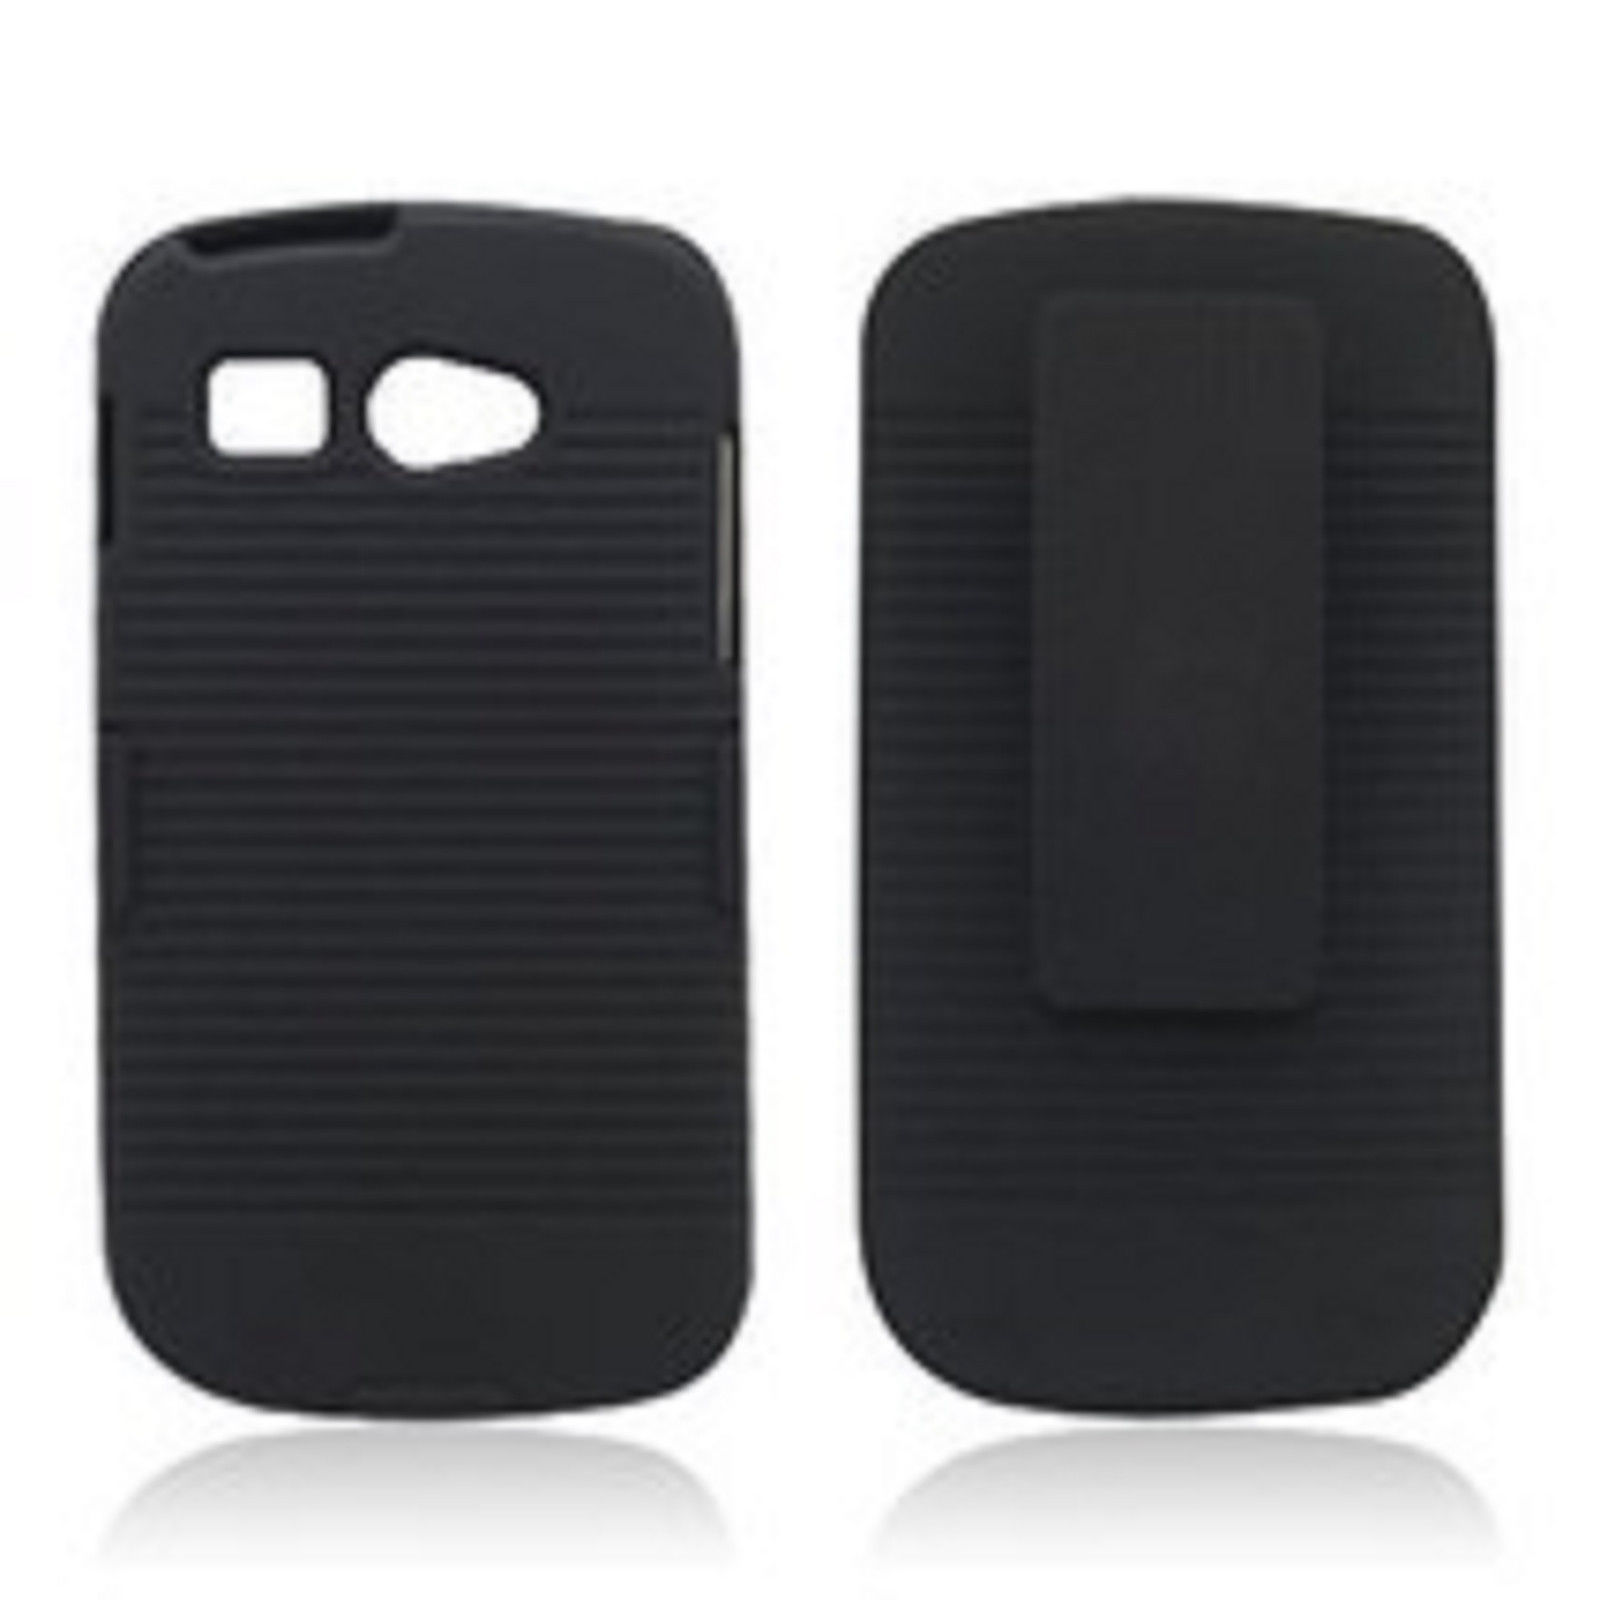 Boost Mobile Kyocera Hydro C5170 rubberized black shell case - $9.99